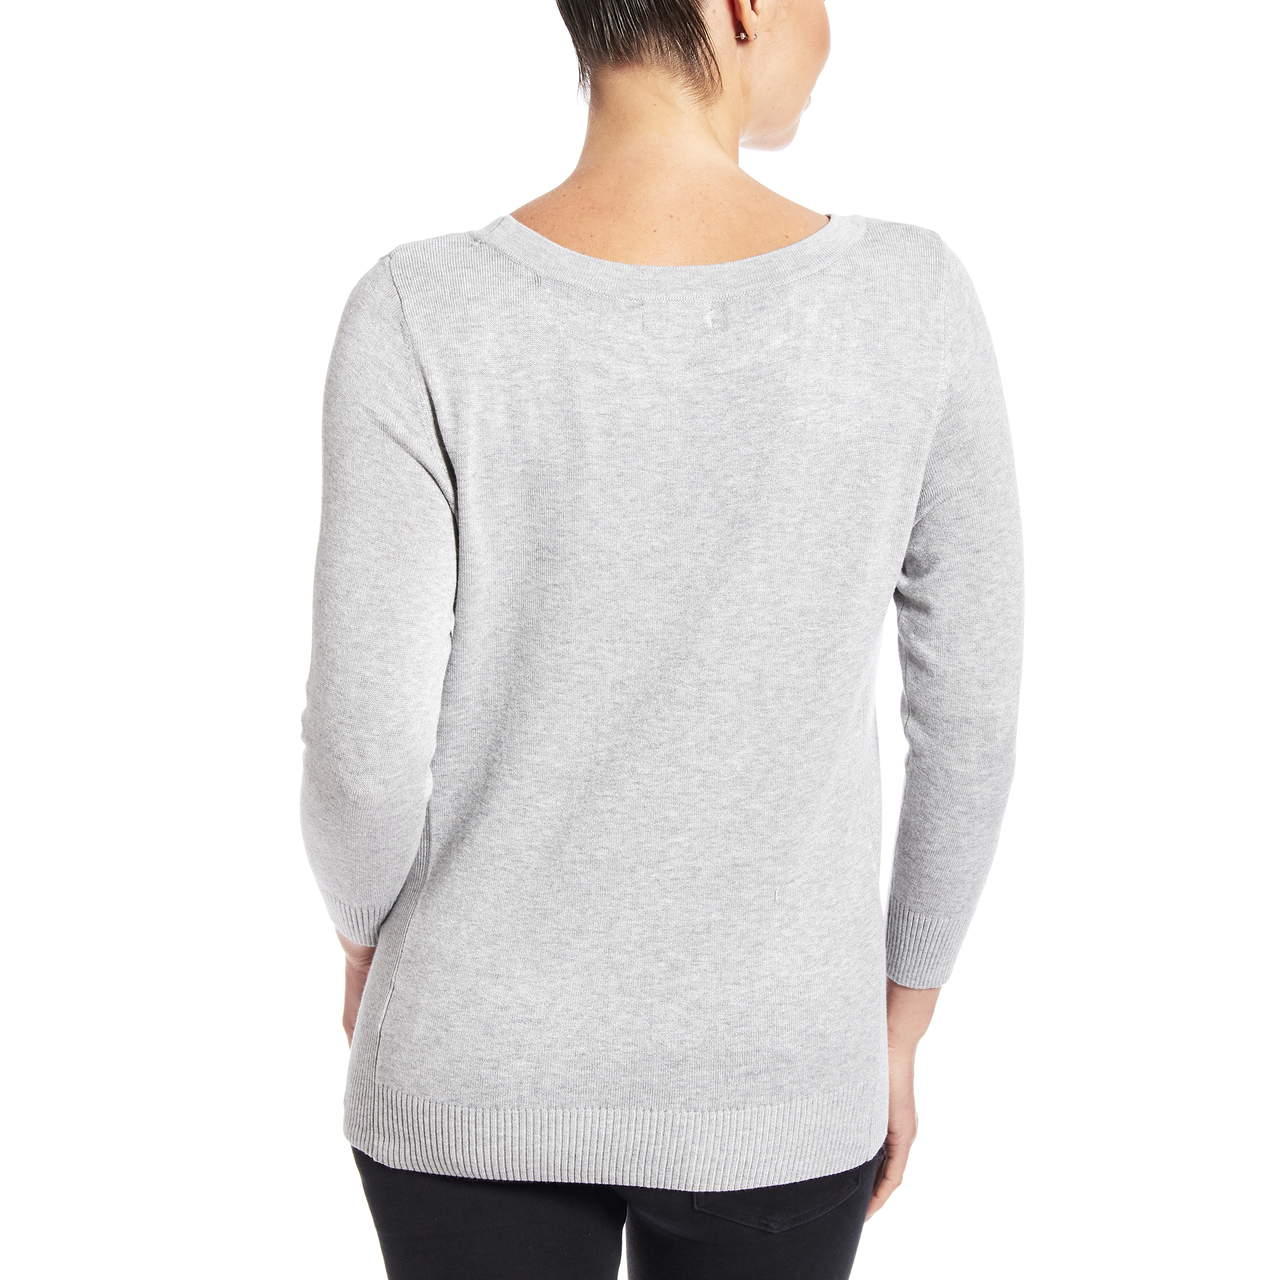 3/4 Sleeve Boat Neck Sweater With Side Rib Detail In Light Heather Grey